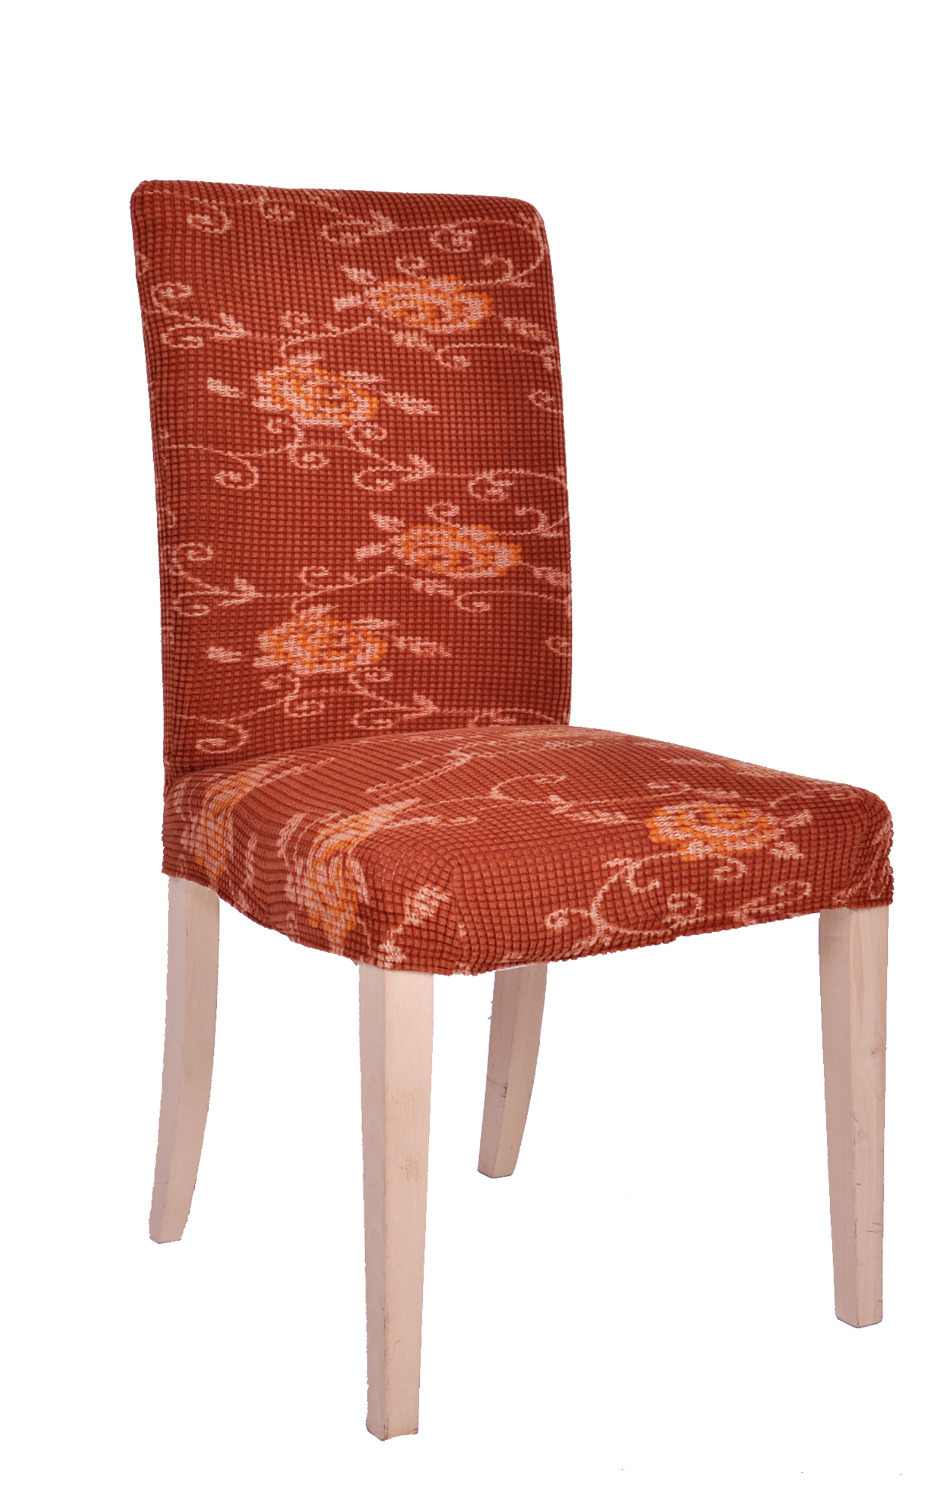 Dining Room Jacquard Spandex Printed Dyed Chair Covers Anti-Mite Oil-proof Waterproof Washable Chair Slipcovers Wedding Hotel(China (Mainland))